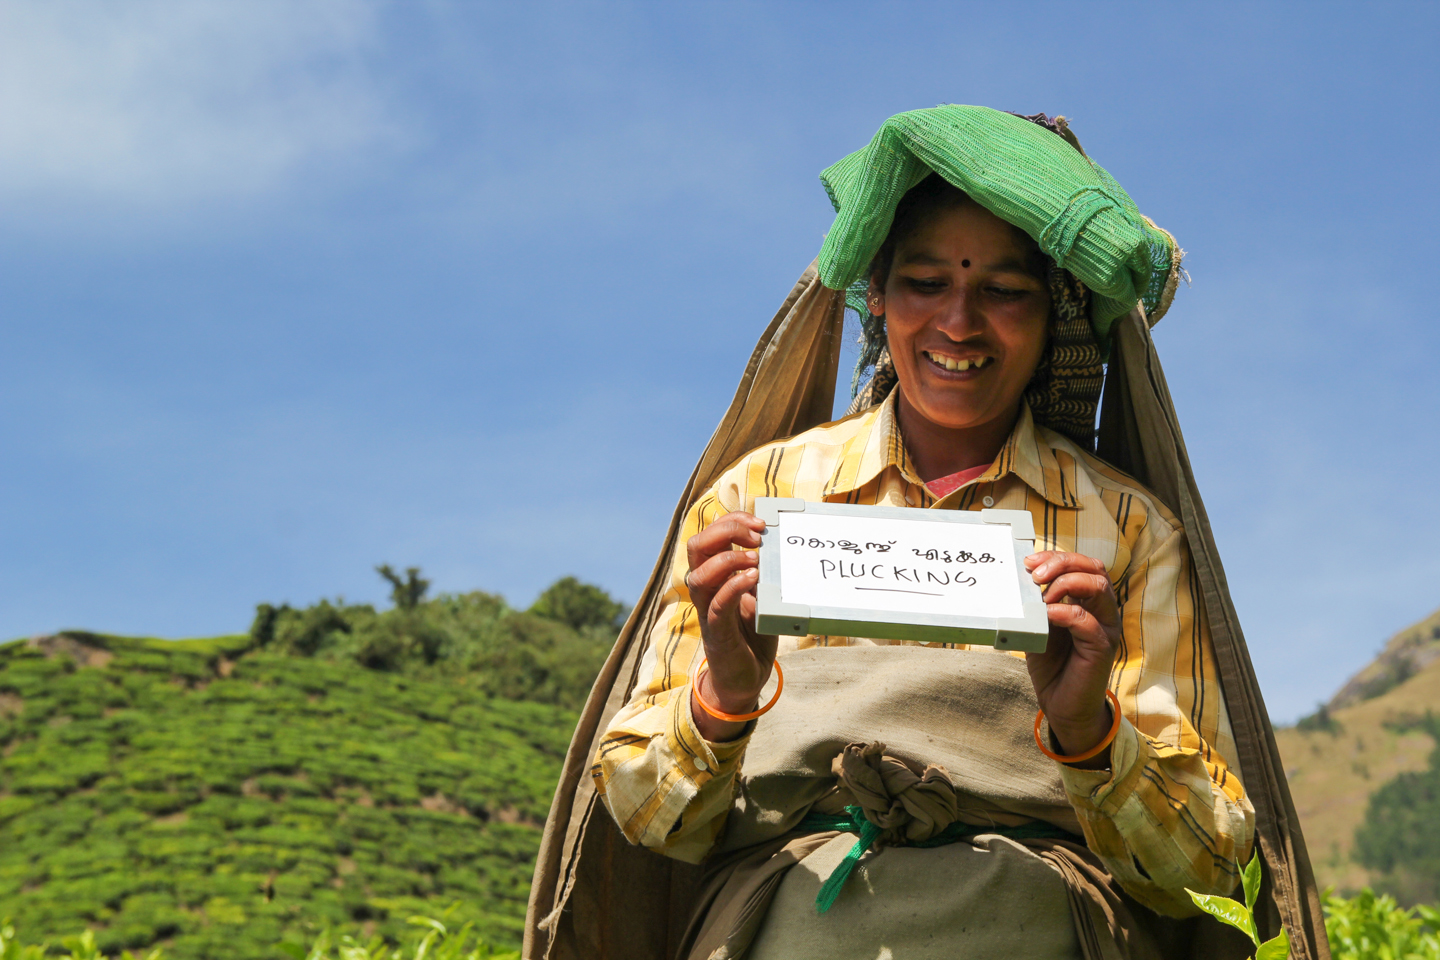 Born and brought up on Surianalle tea estate in the hills of Kerala, Delma plucks tea leaves eight hours a day. Delma had a love marriage with a man who works at the tea estate's processing factory where the leaves are turned into tea dust destined for the chai stands of India.